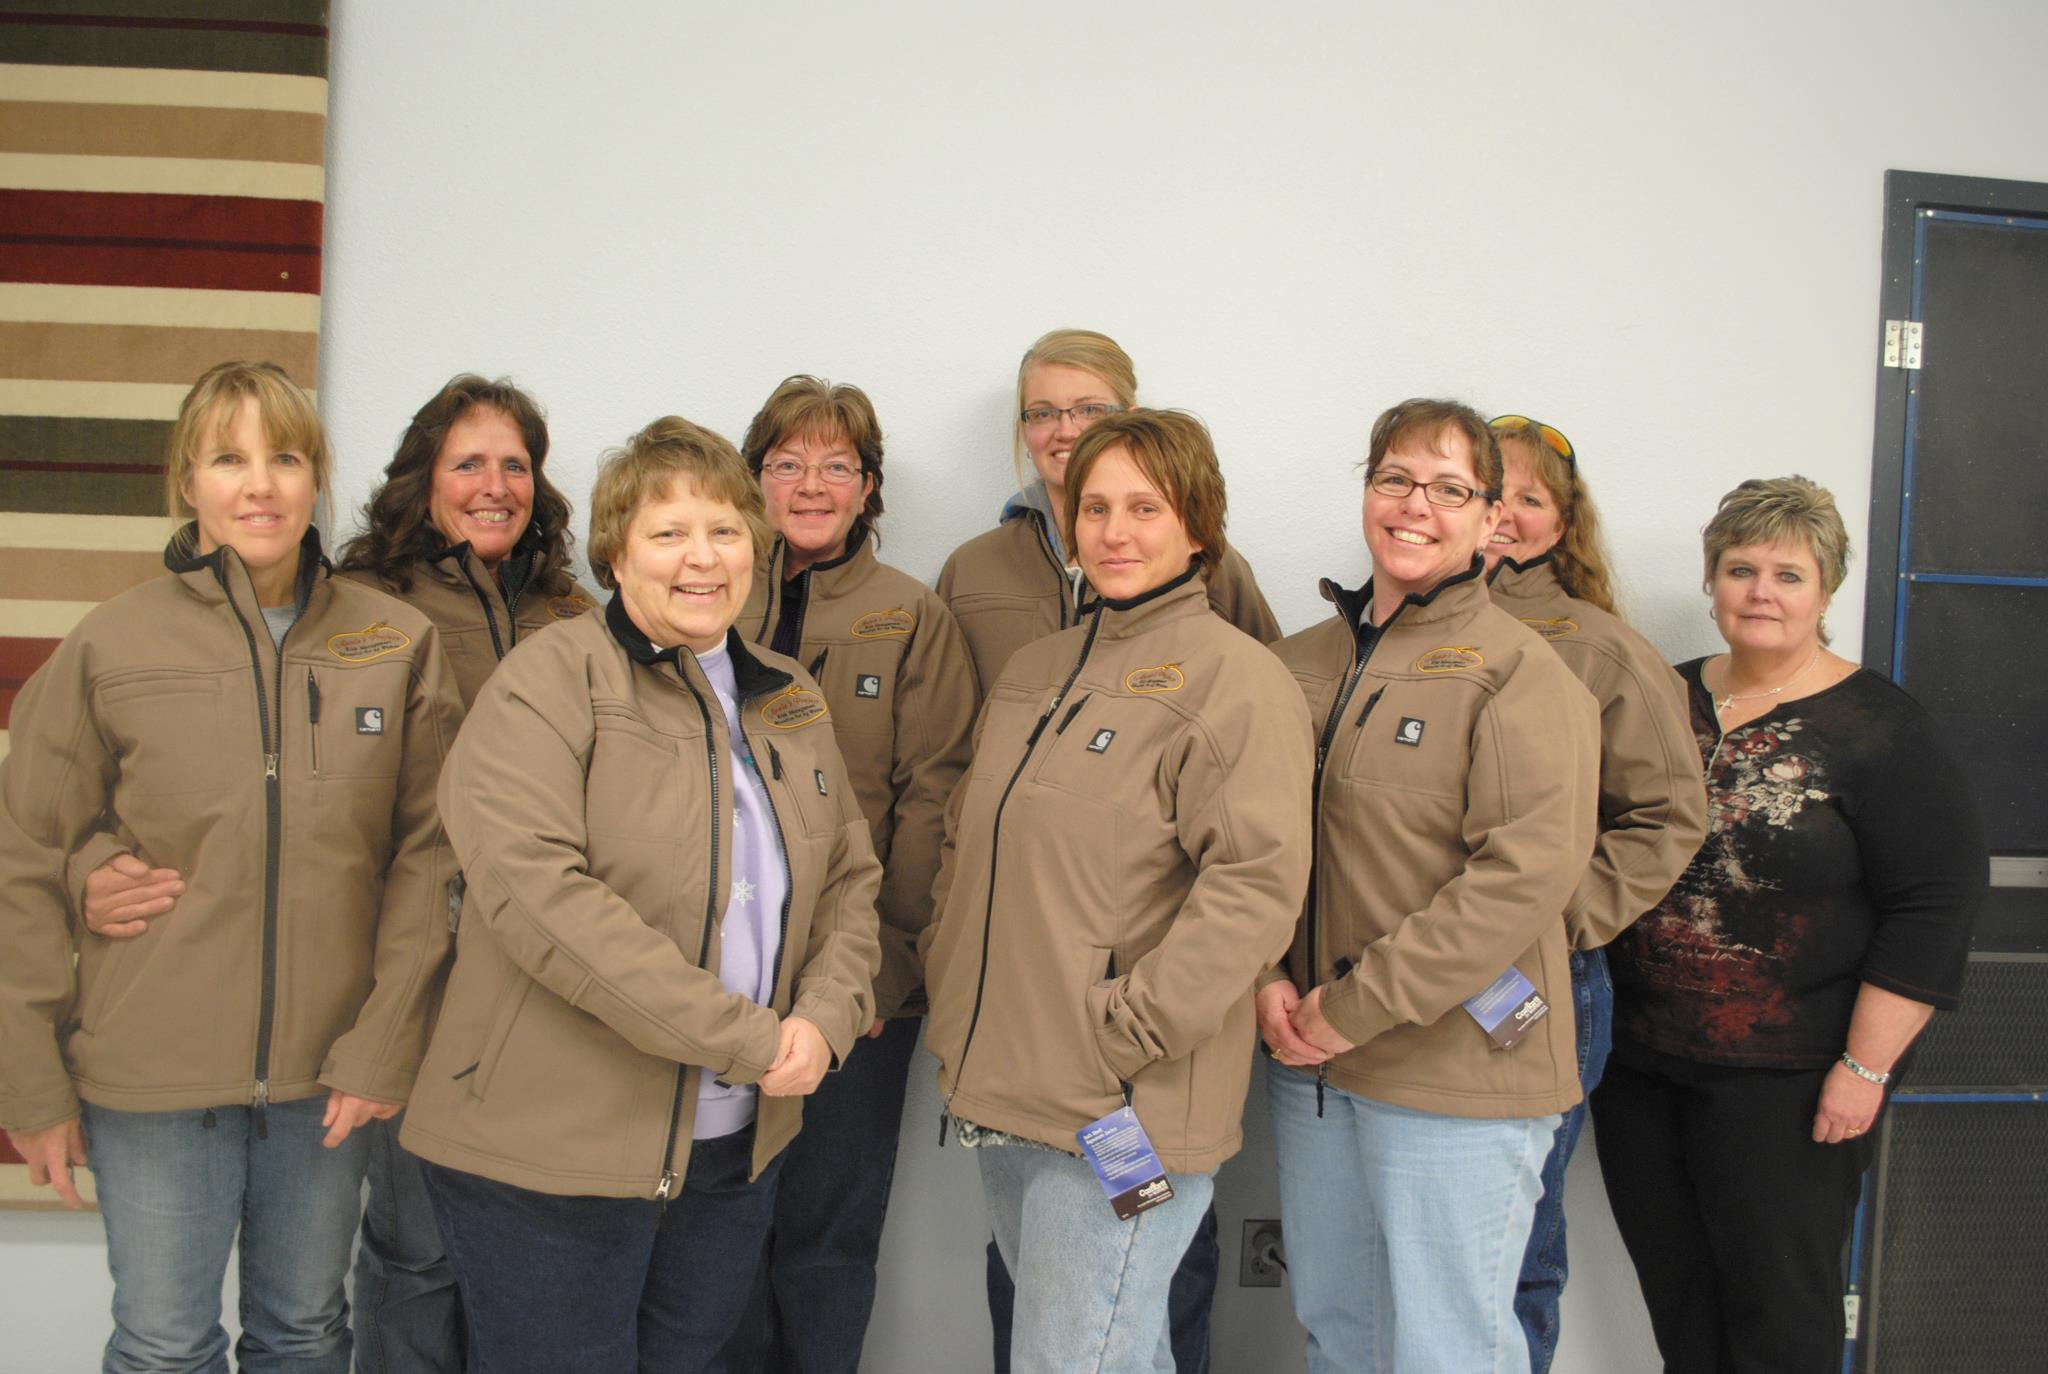 Graduates from the first Annie's Project in Wyoming early this year facilitated by Tammie Jensen.